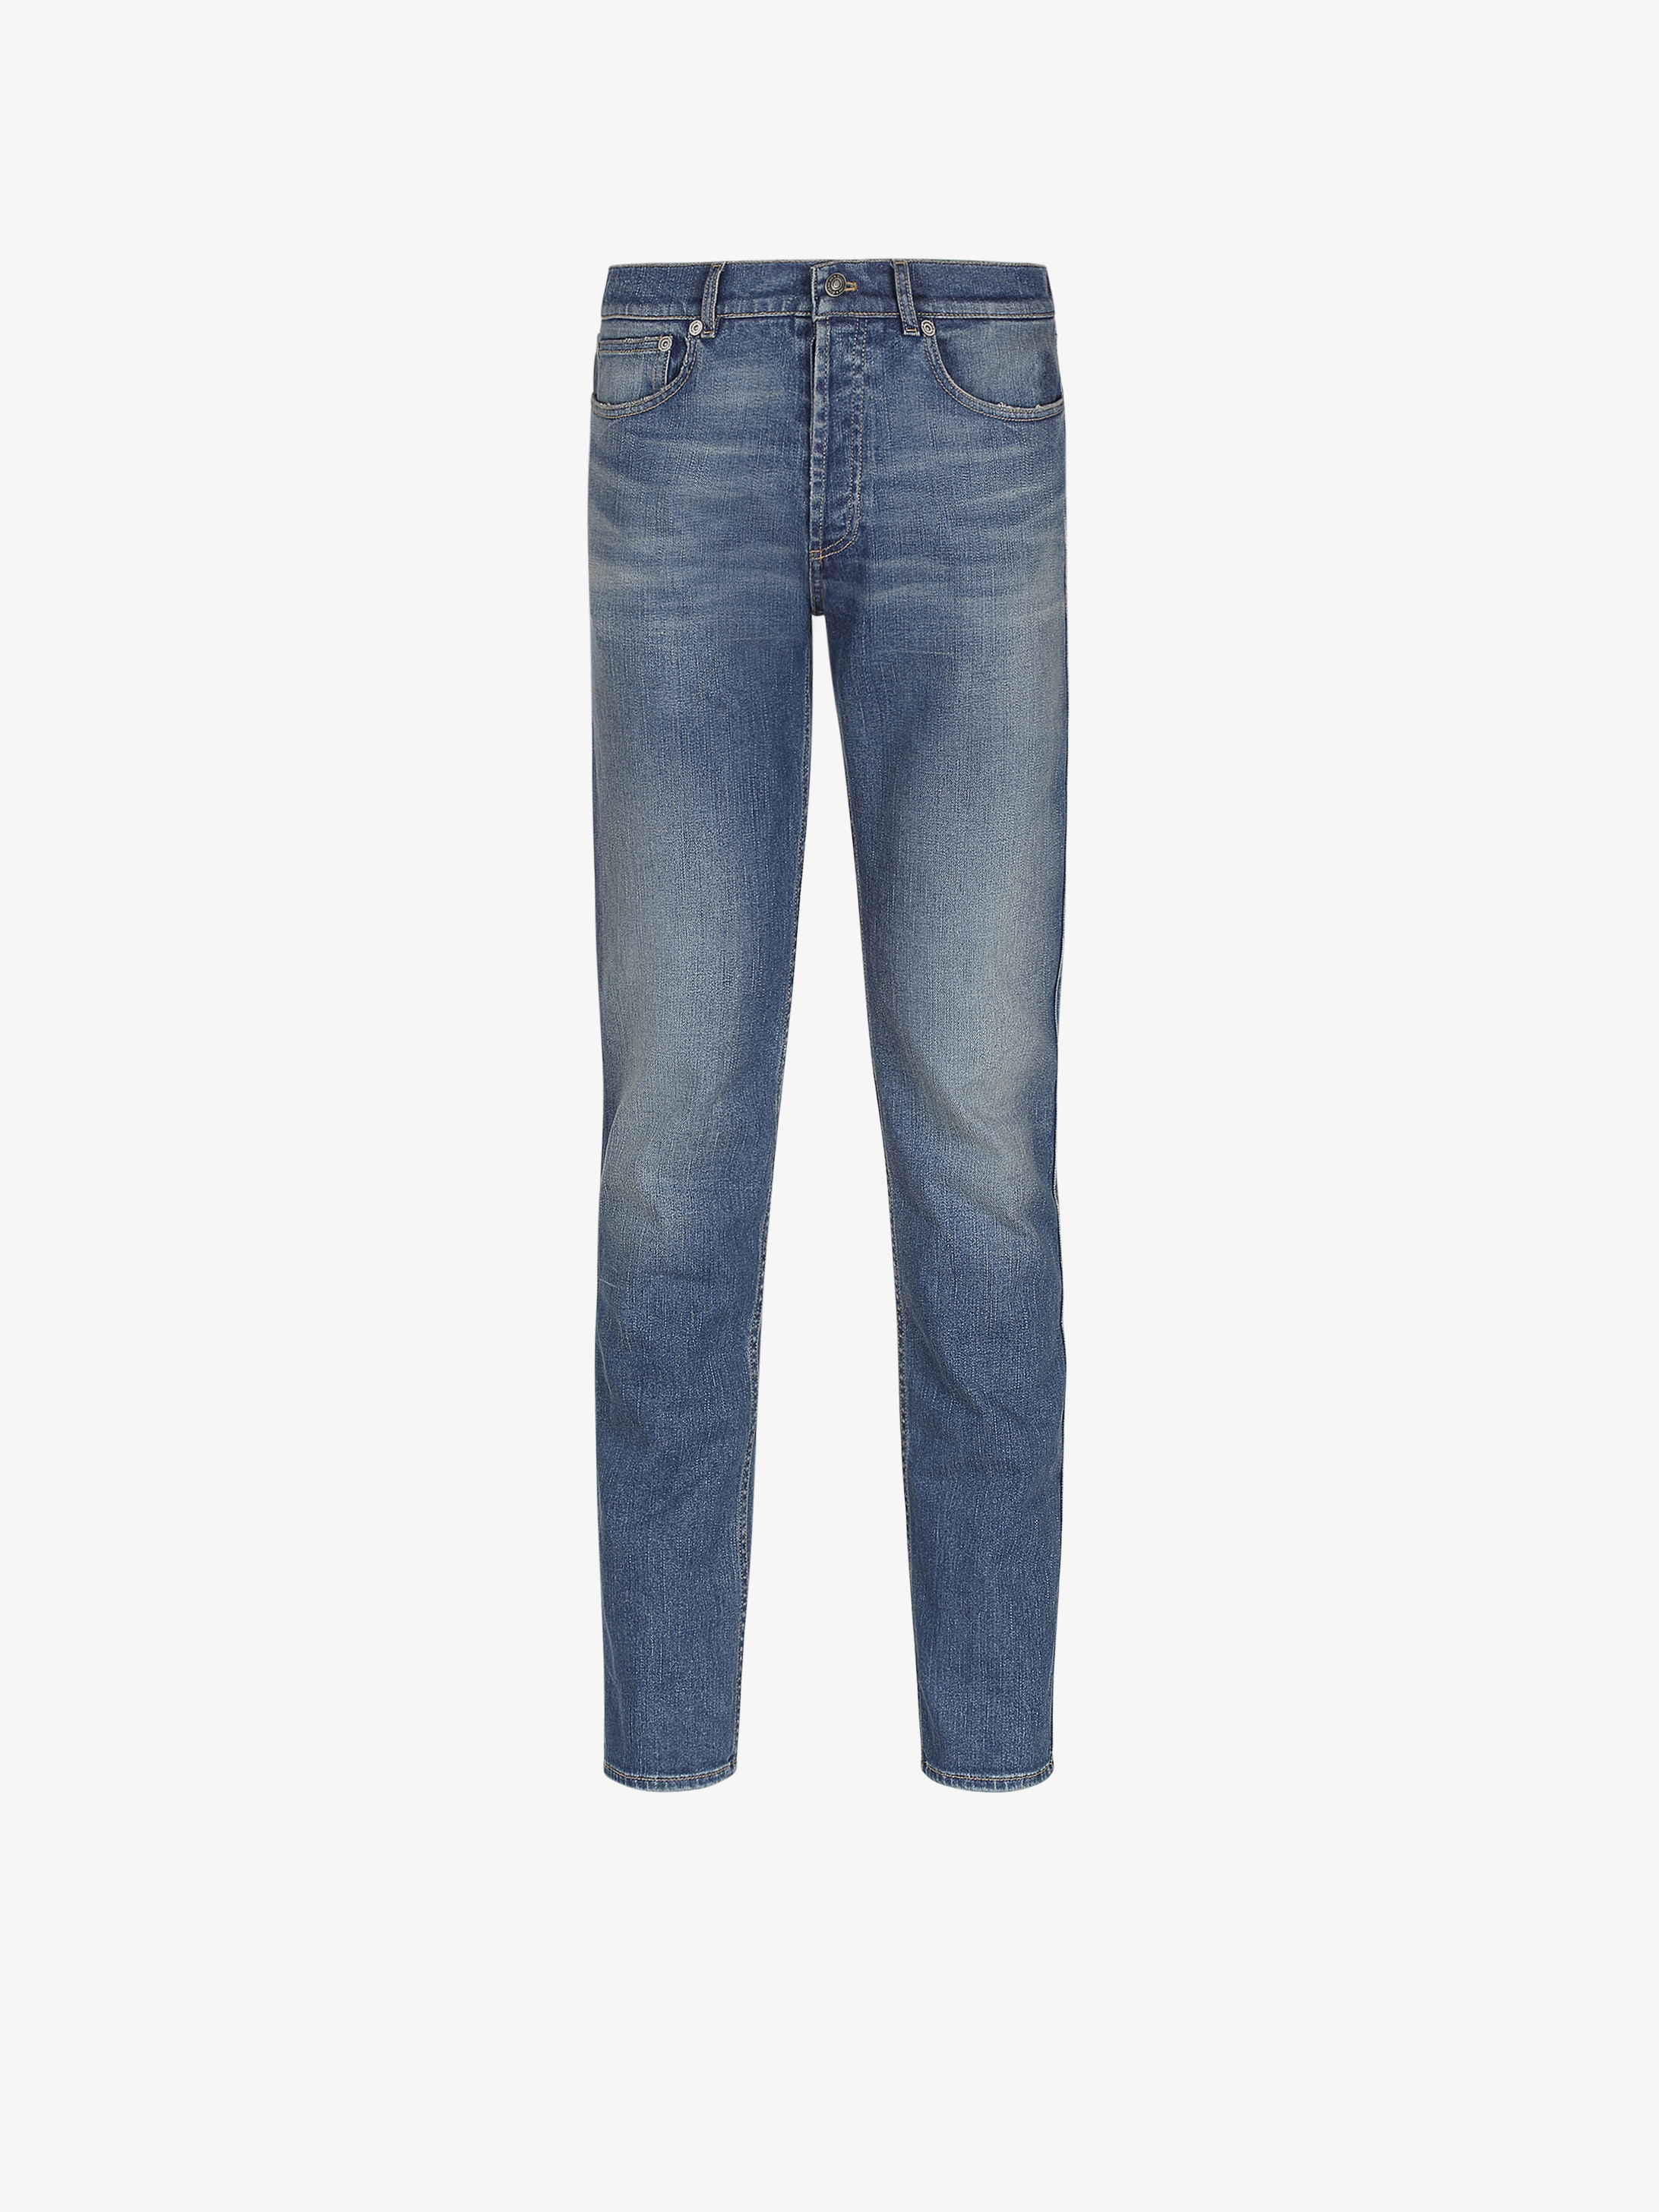 GIVENCHY PARIS slim fit jeans with stamp